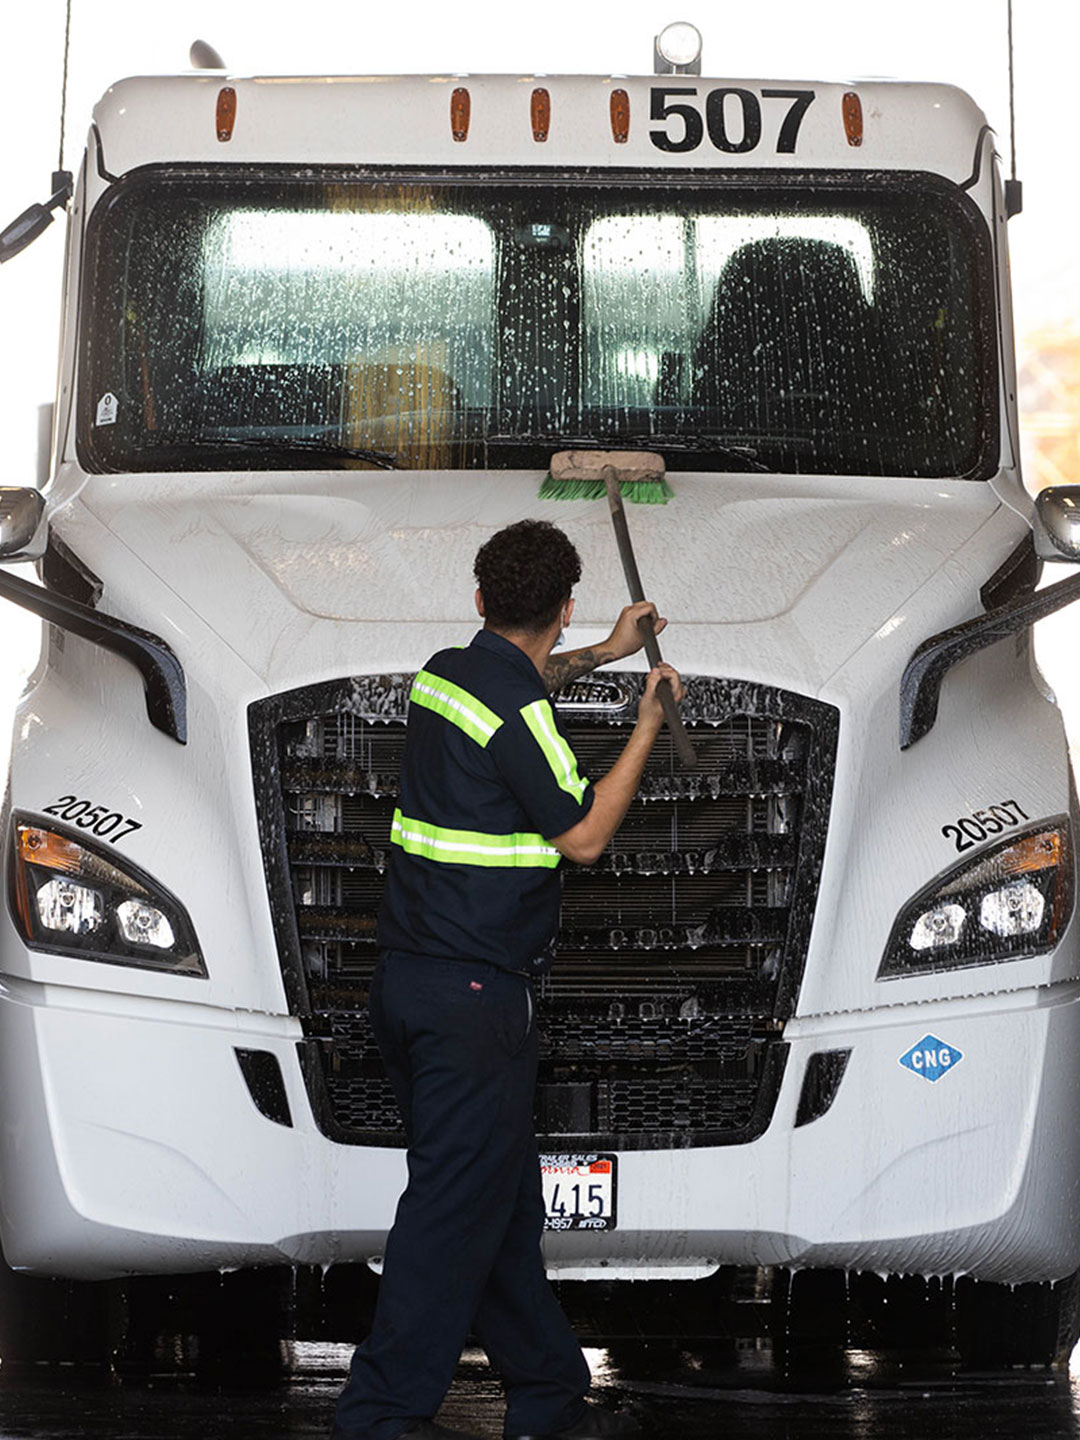 Technician cleaning front hood of Semi cab